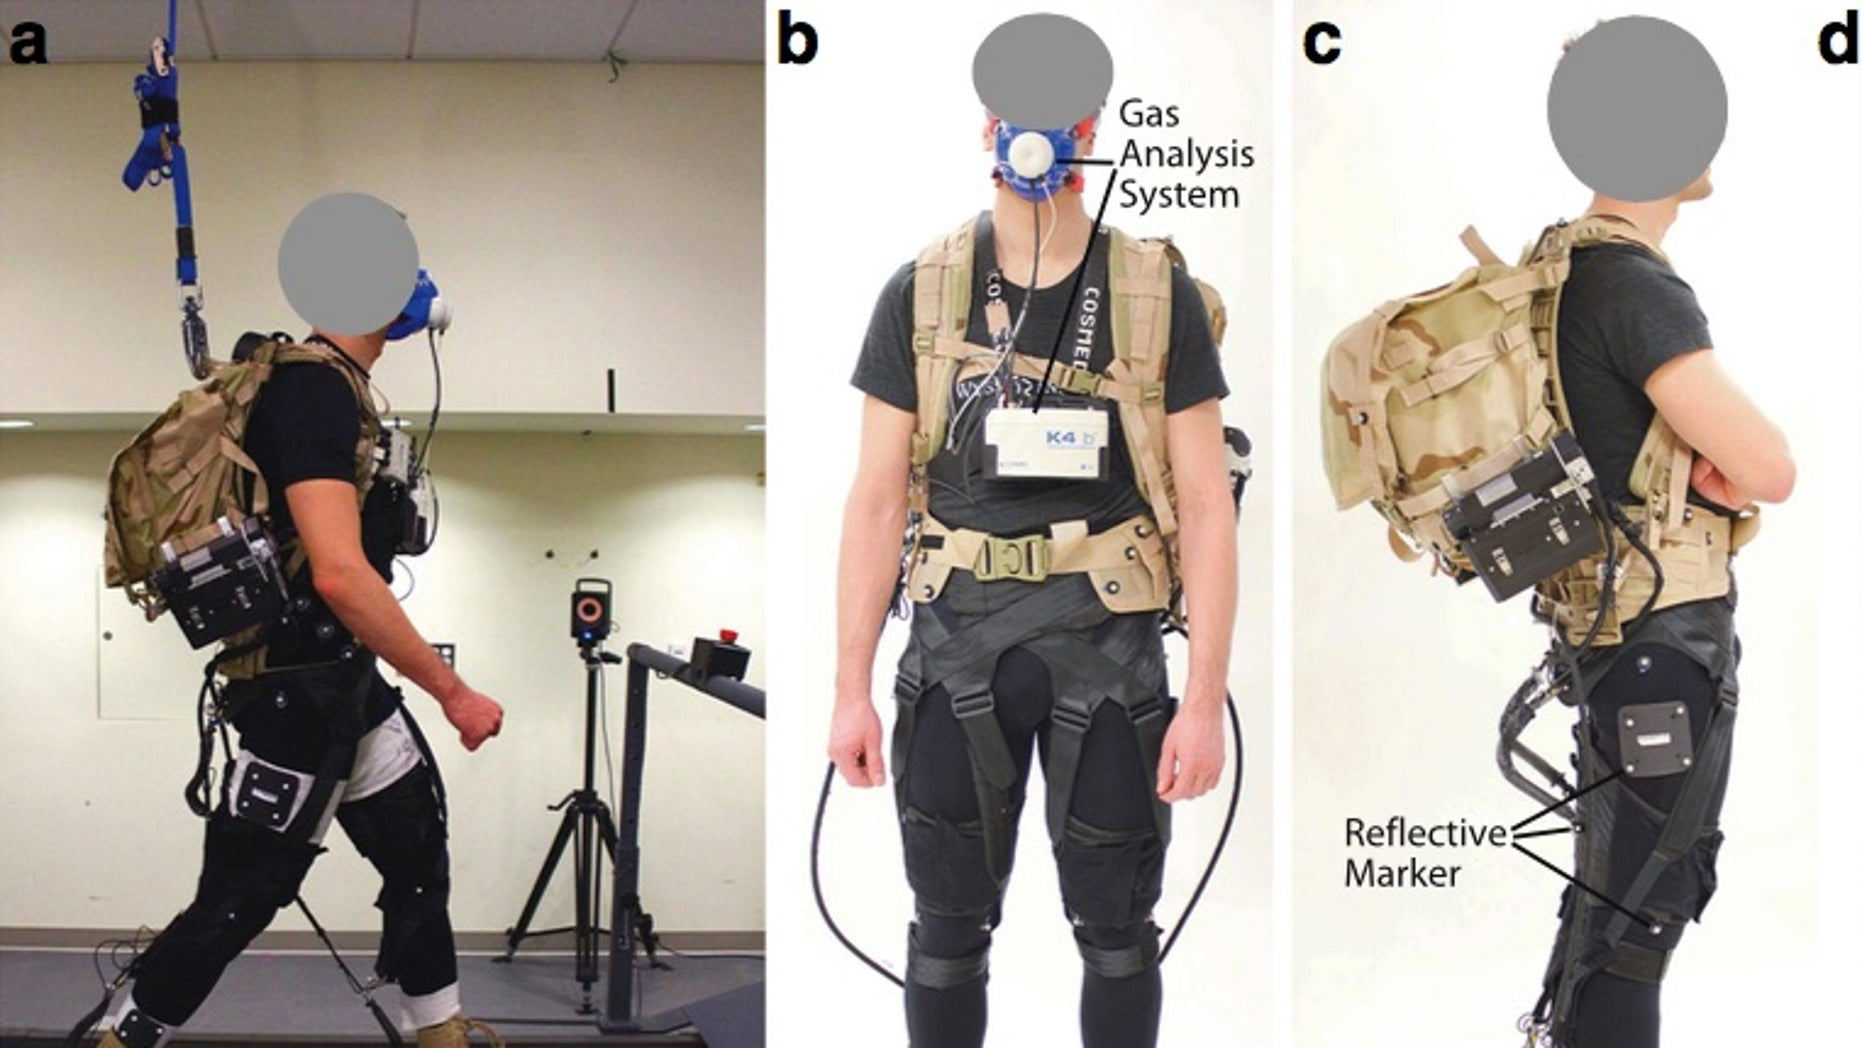 Treadmill tests helped researchers rate the efficiency of the newly developed exosuit.